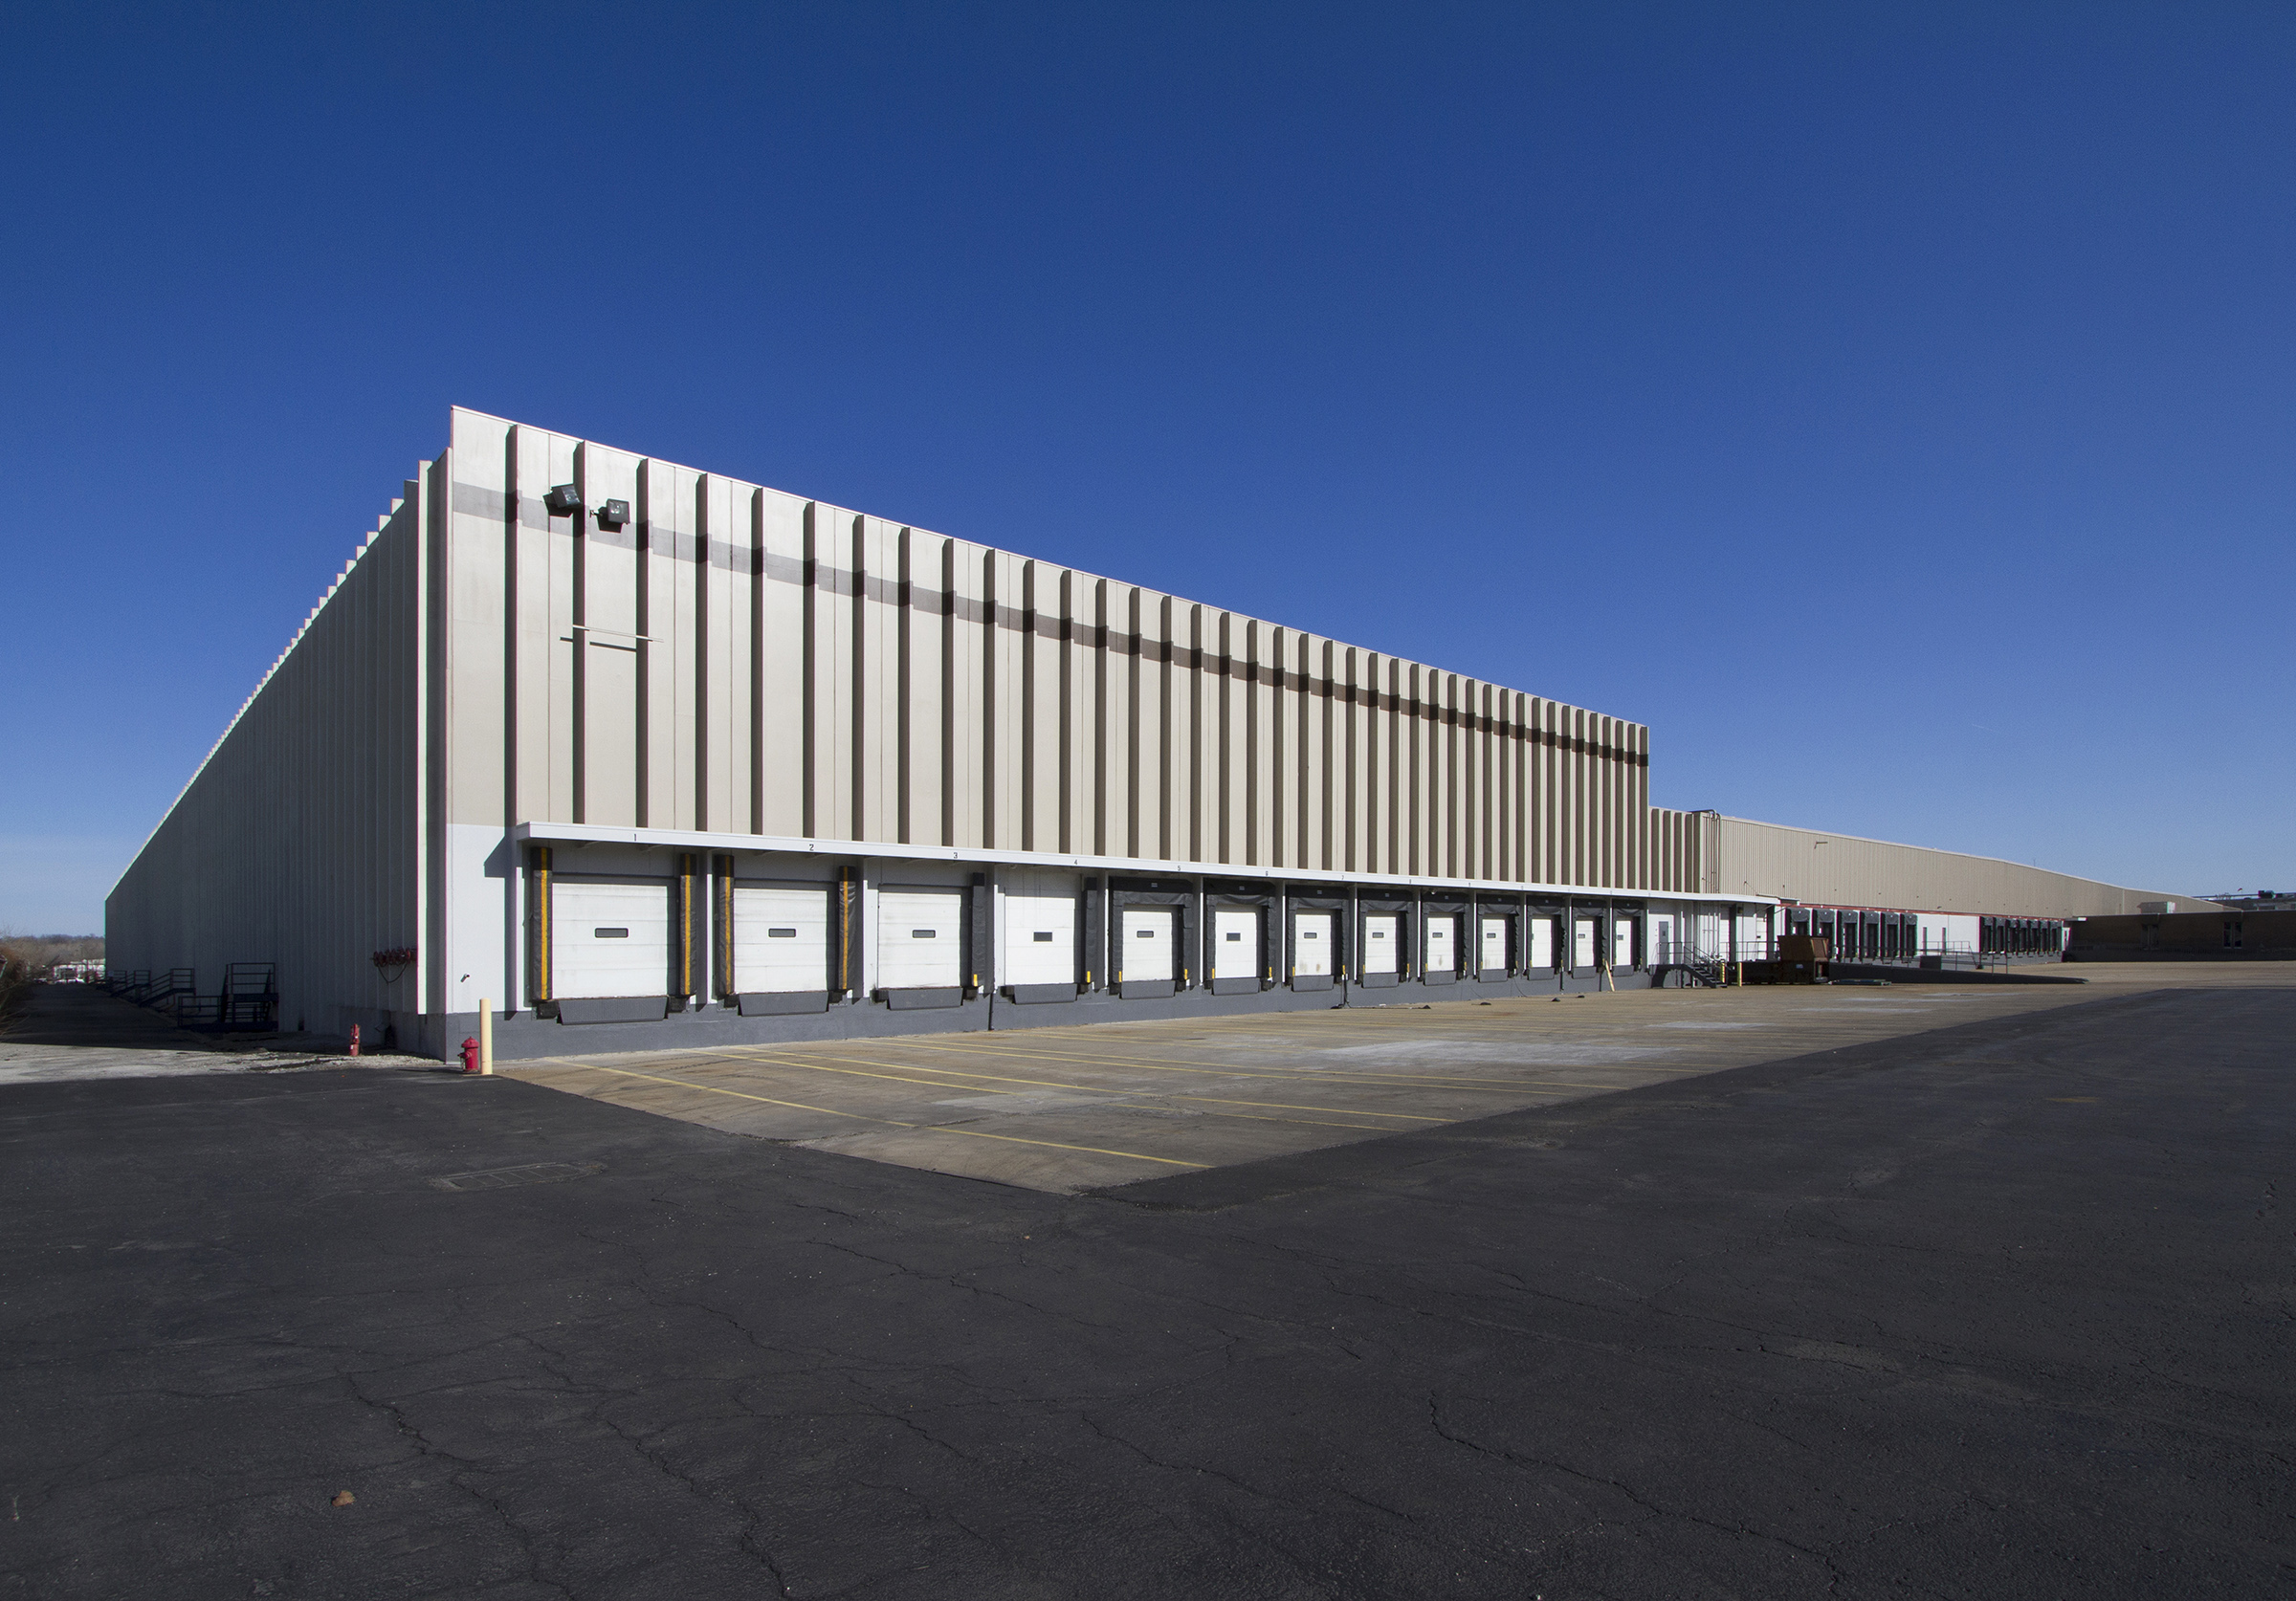 Overstock.com Enters Kansas City, Kansas with 517,000 SF Lease